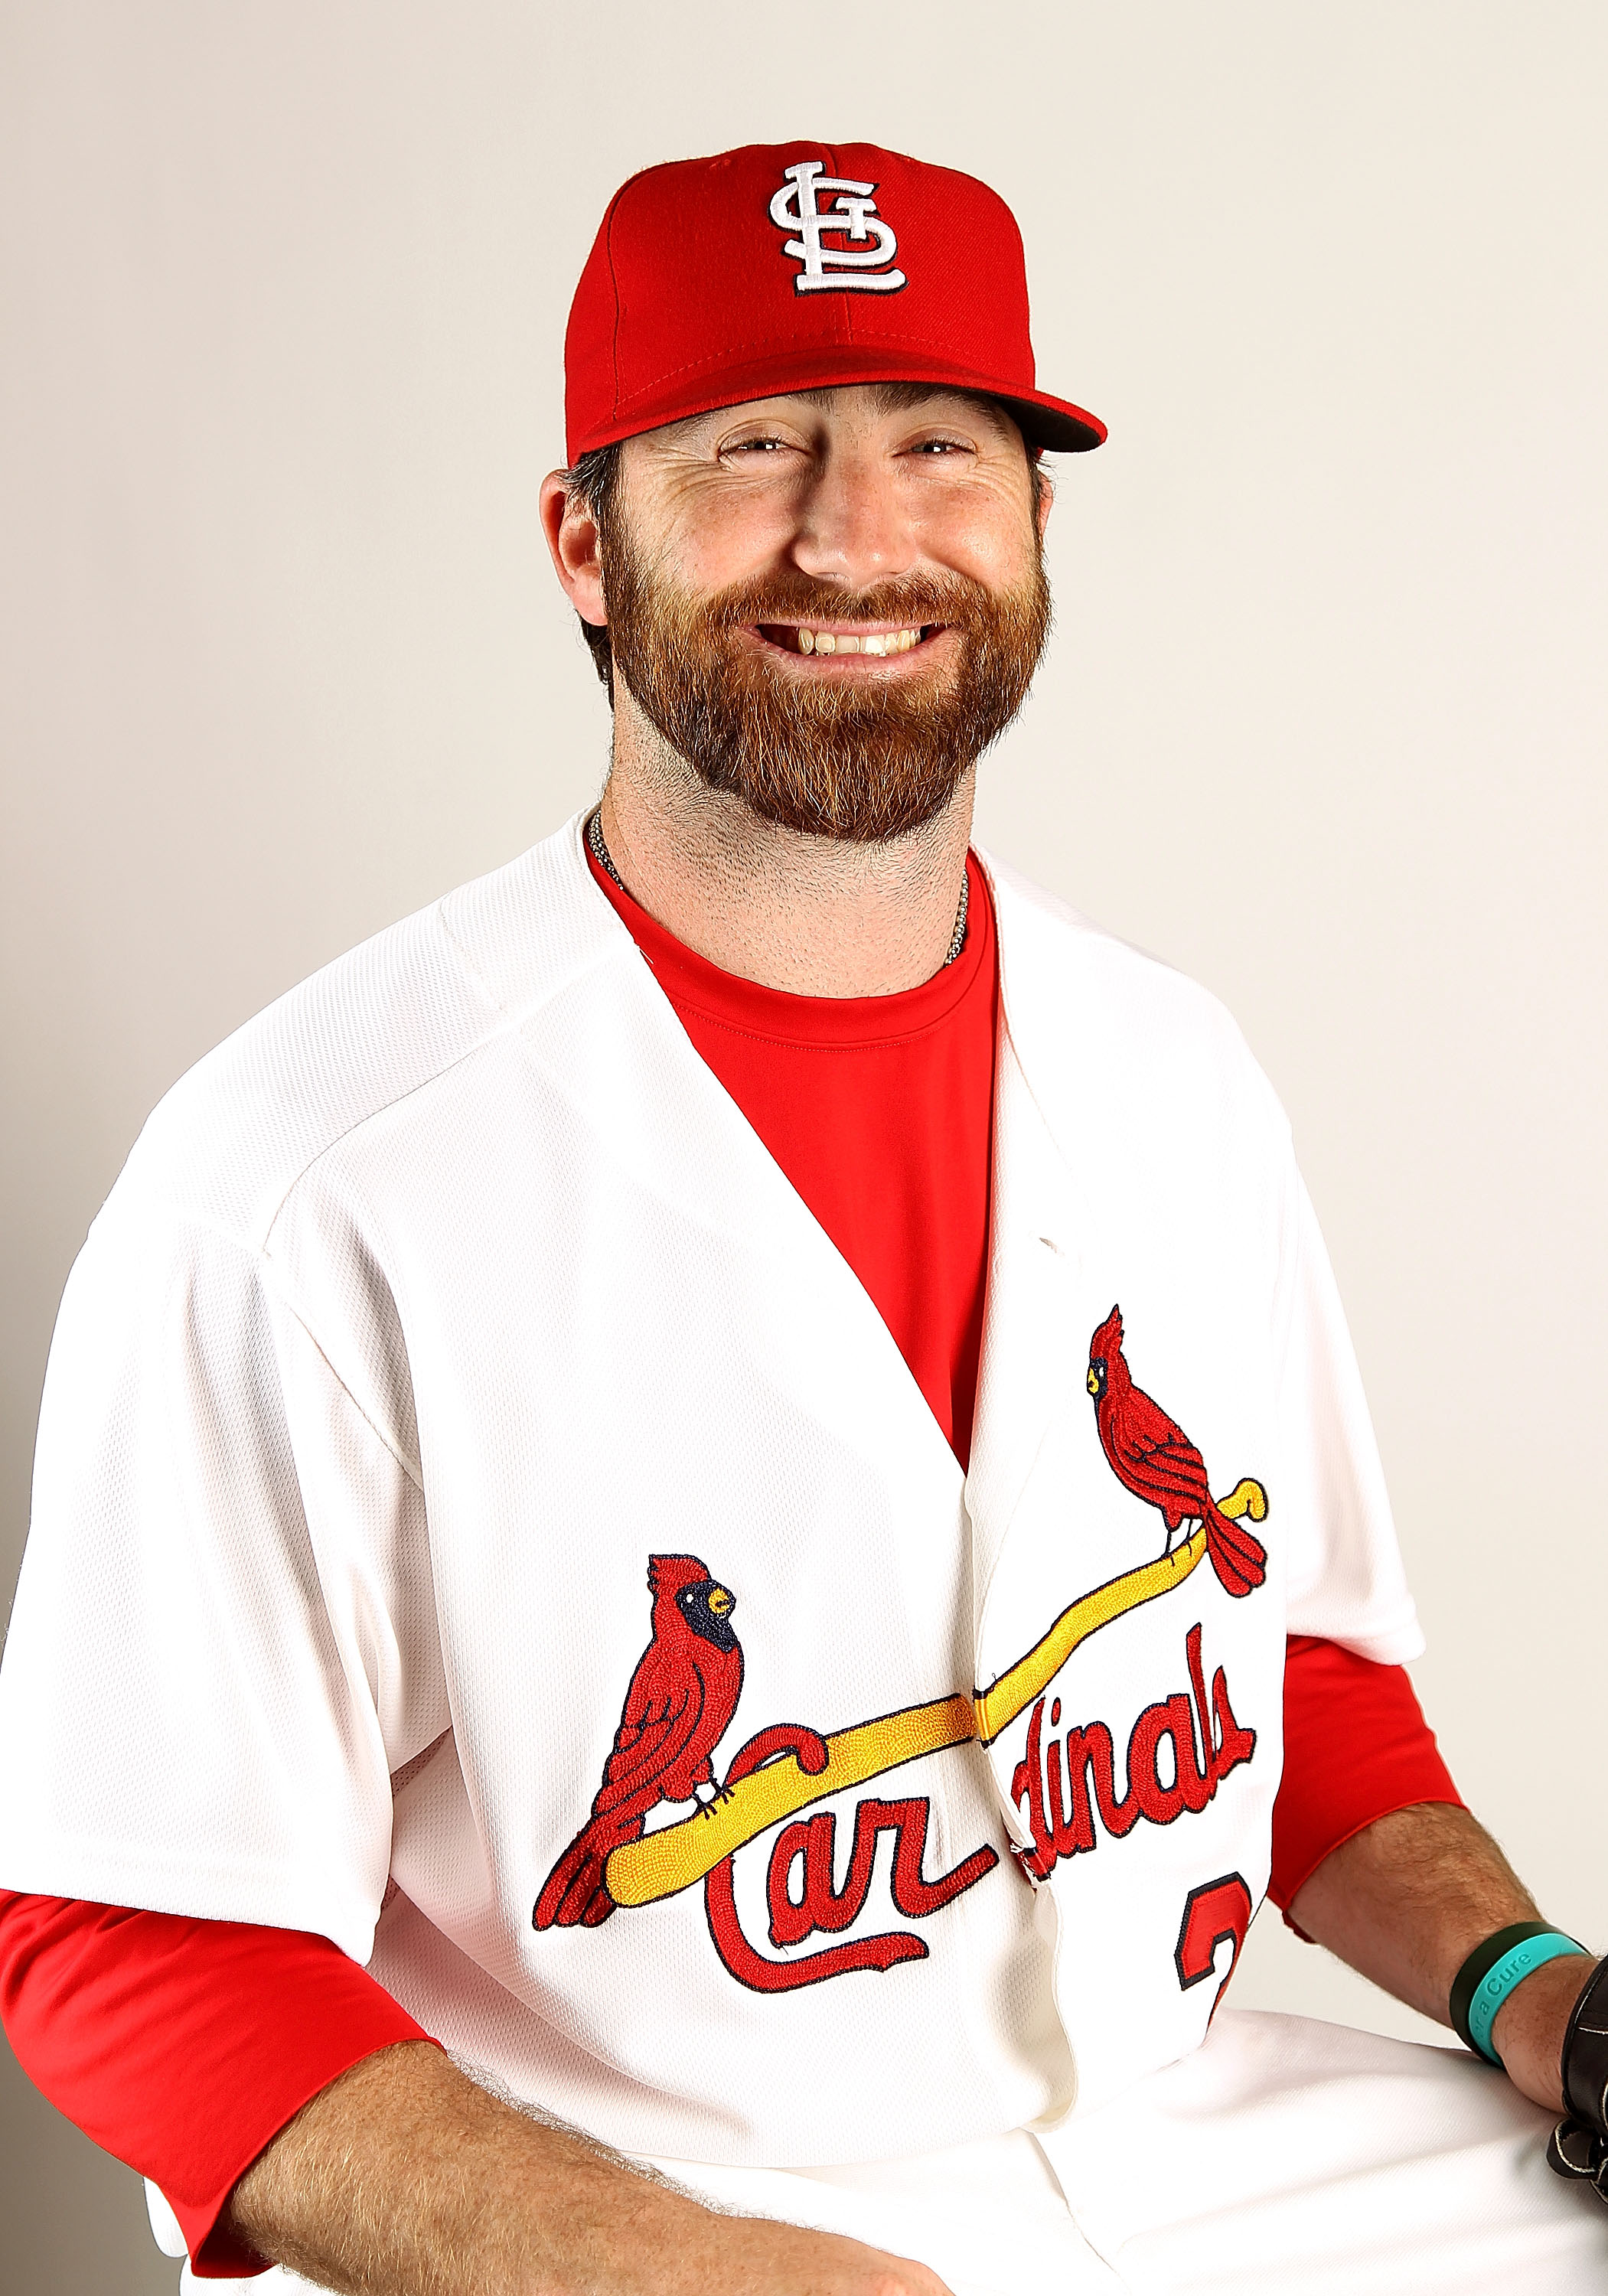 JUPITER, FL - FEBRUARY 24:  Jason Motte #30 of the St. Louis Cardinals during Photo Day at Roger Dean Stadium on February 24, 2011 in Jupiter, Florida.  (Photo by Mike Ehrmann/Getty Images)